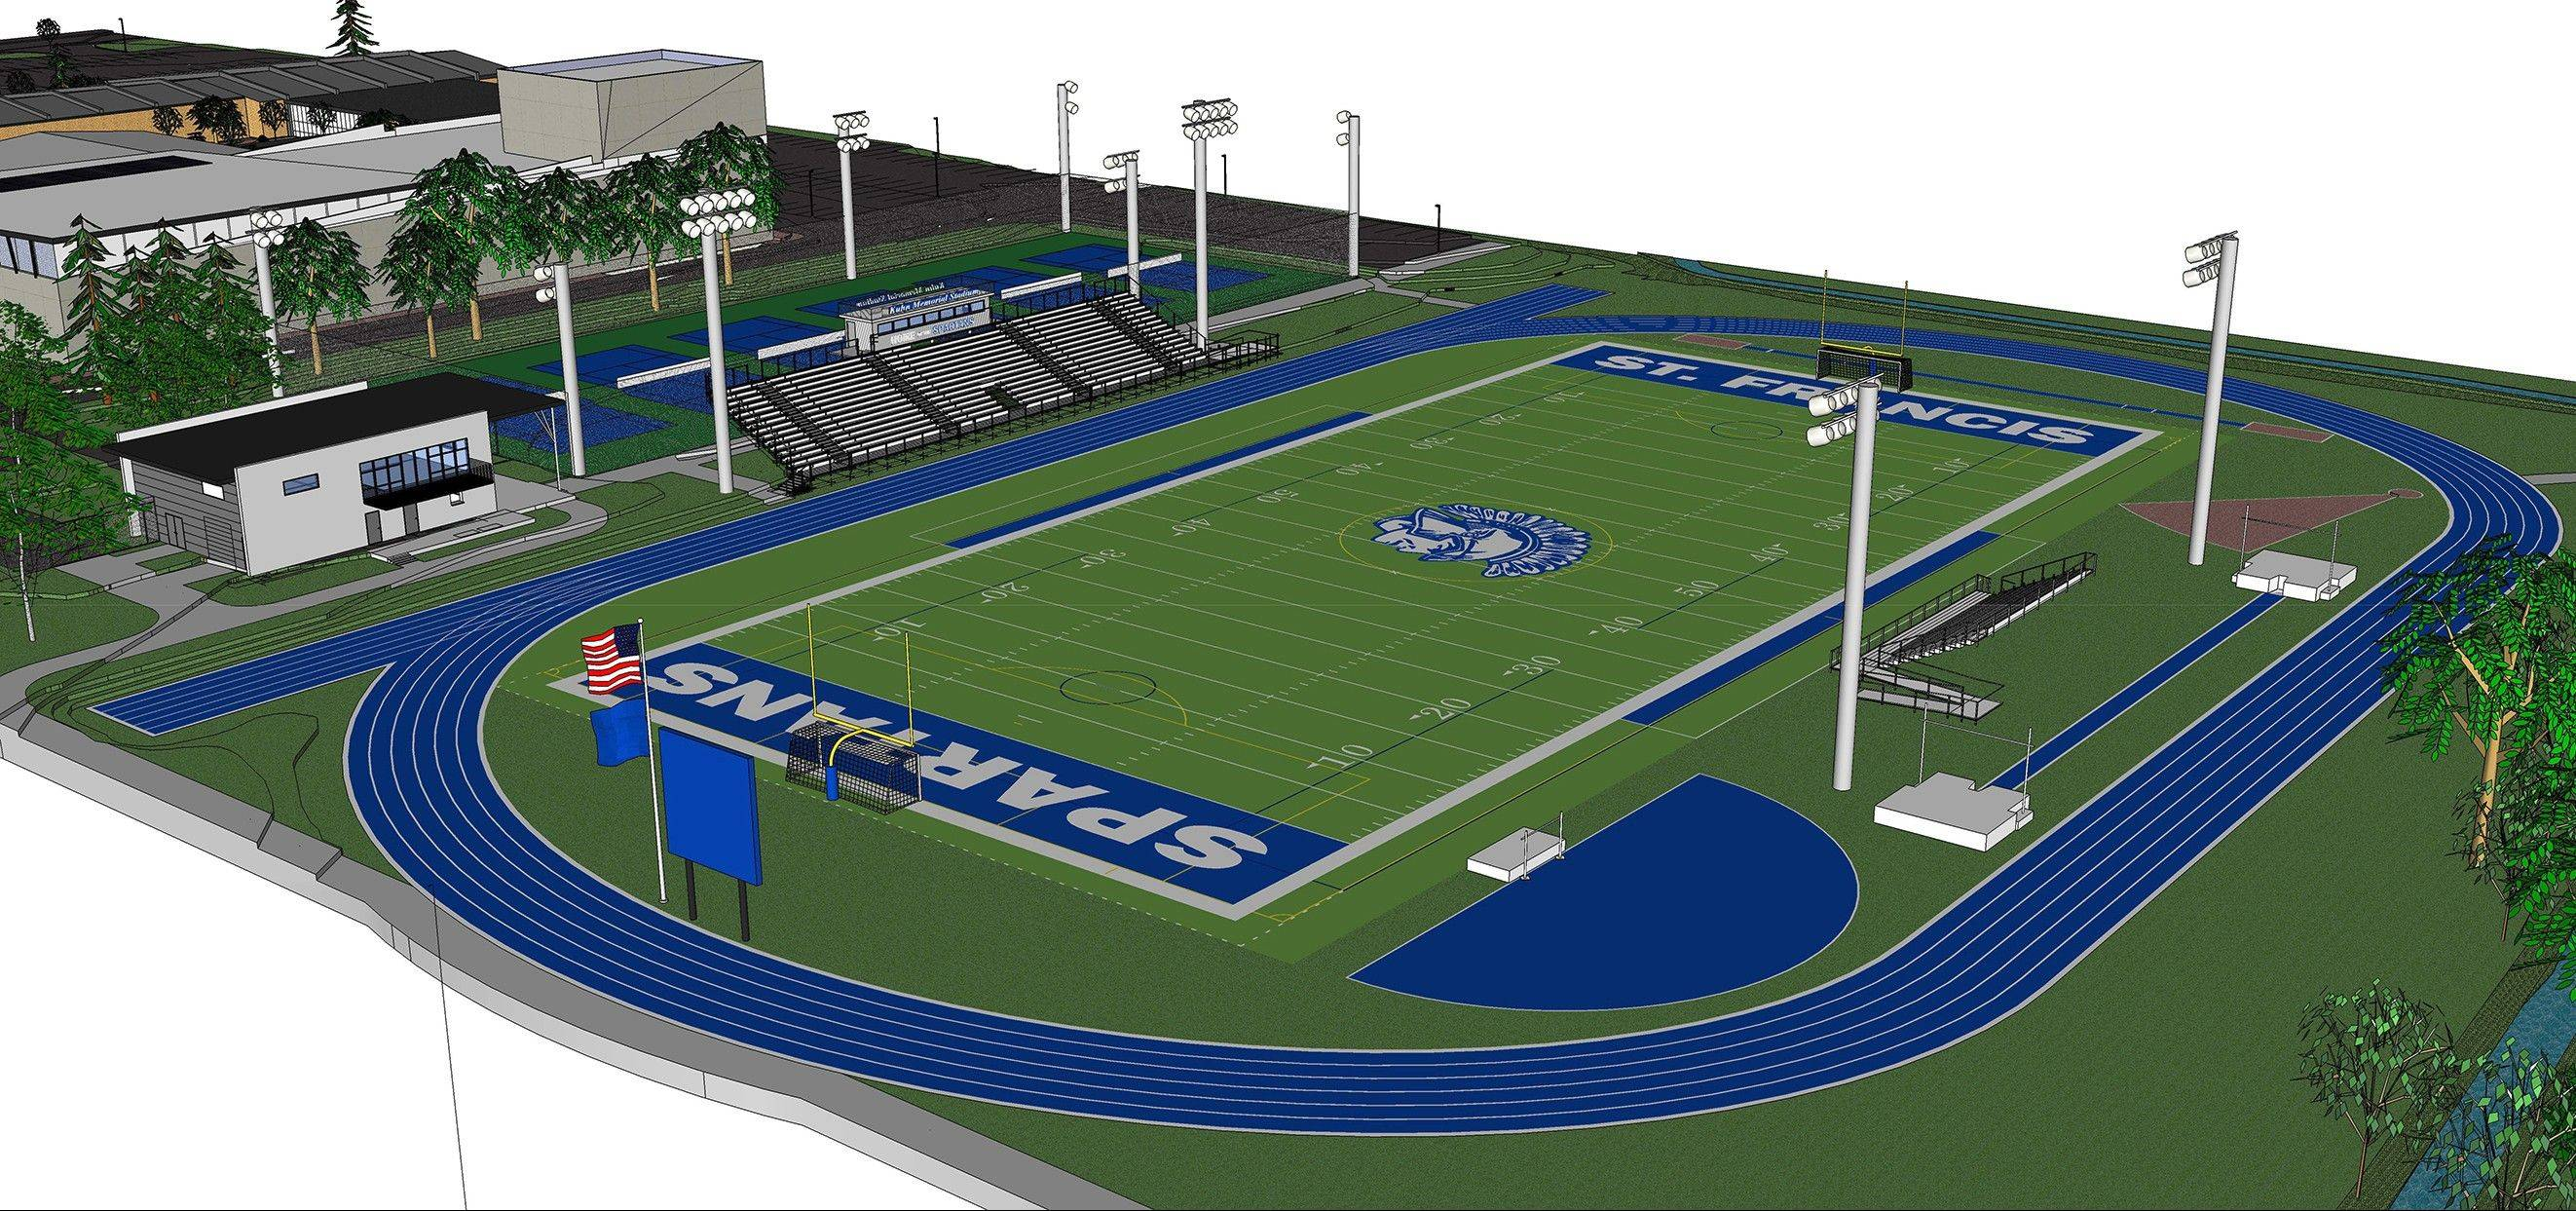 A rendering of the St. Francis High School stadium project.